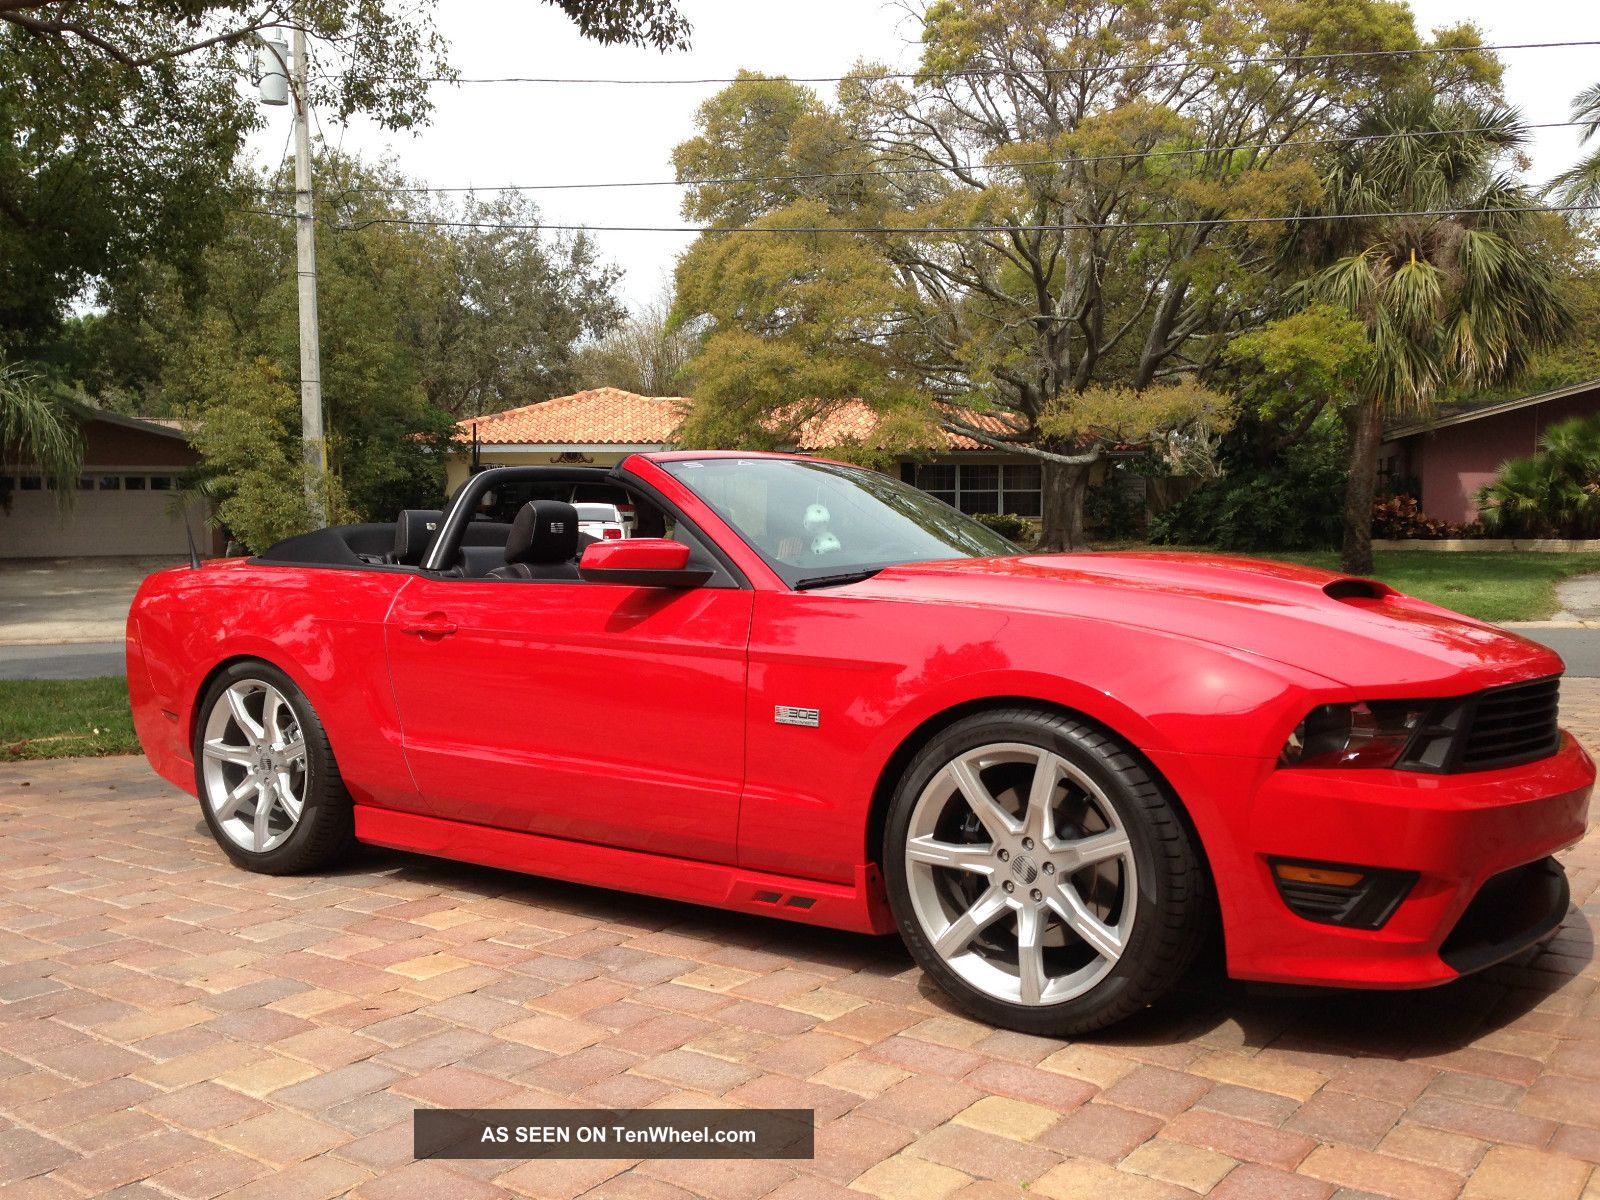 2011 Ford Mustang Gt Saleen Convertible In Race Red With Full Black Mustang photo